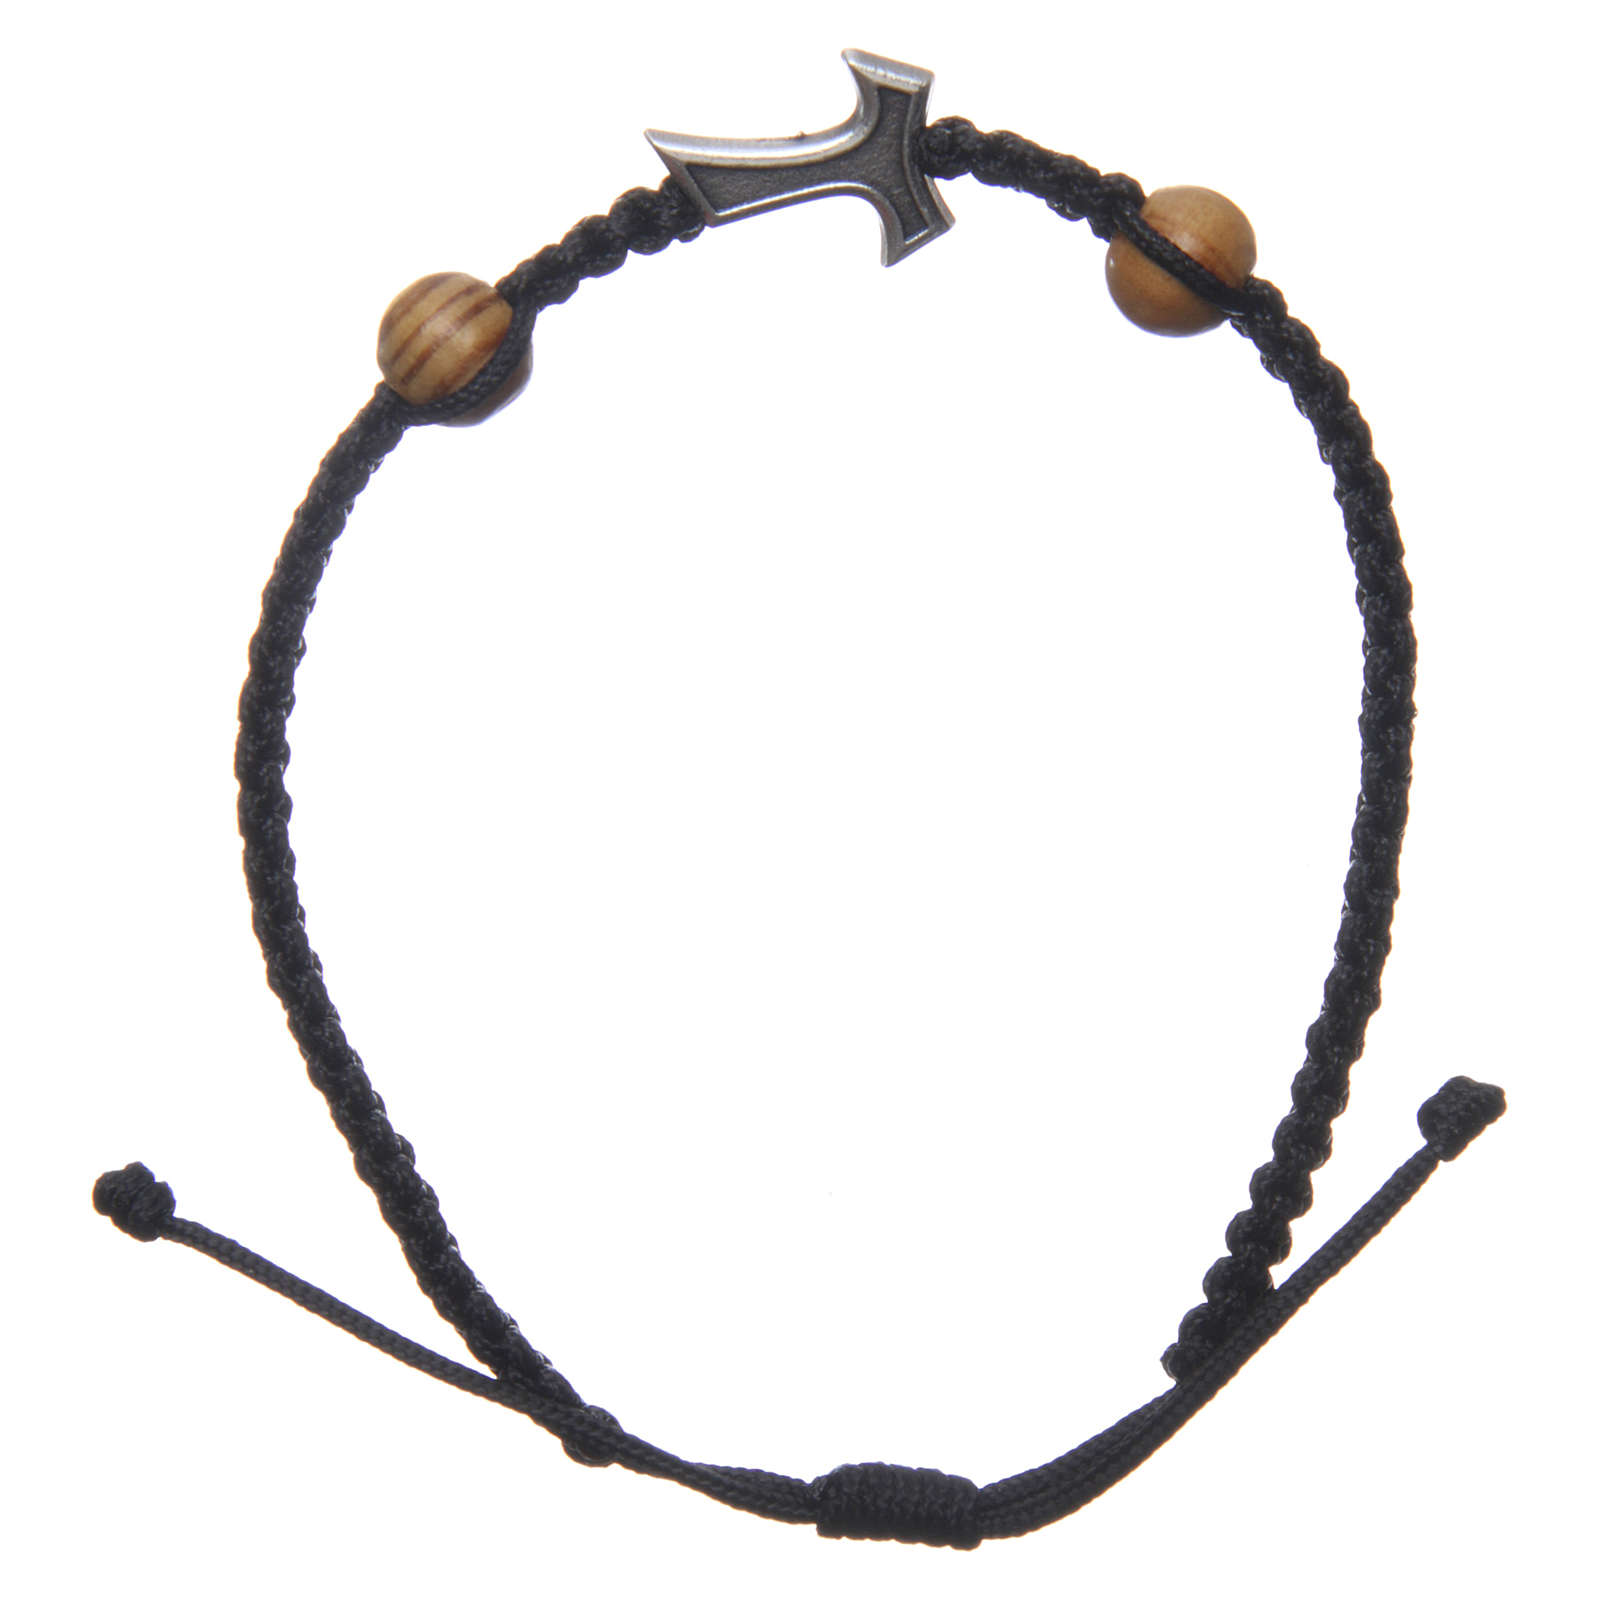 Medjugorje bracelet in black rope with Tau cross and two grains 4